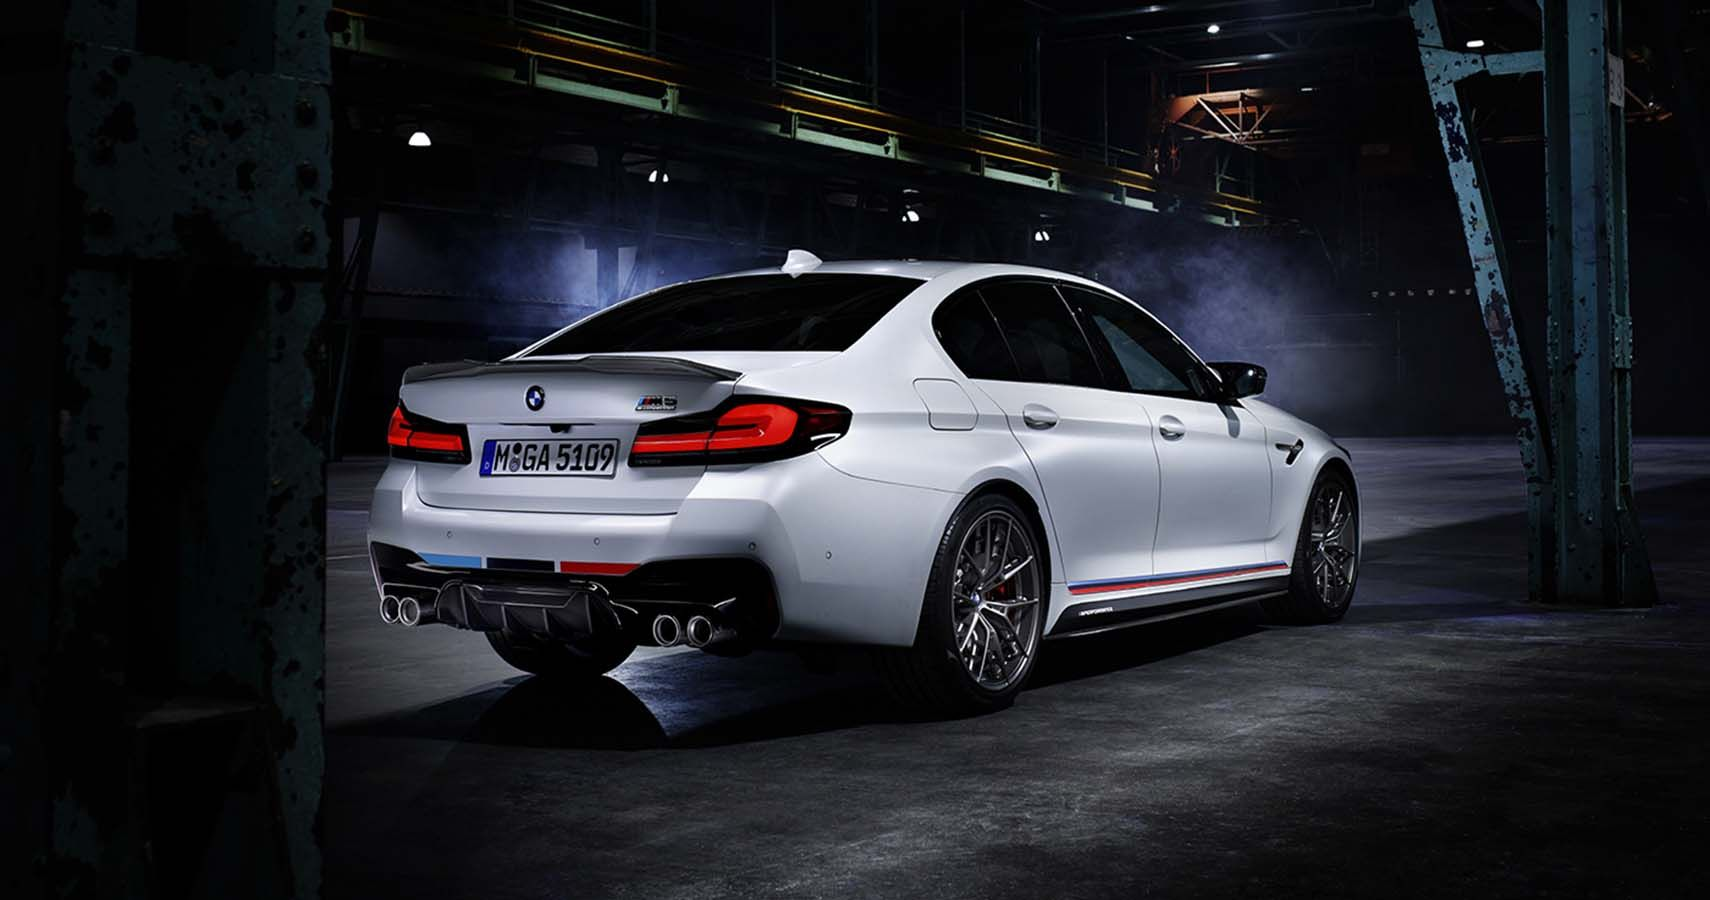 2021 BMW M5: What We Expect From The Super Sedan